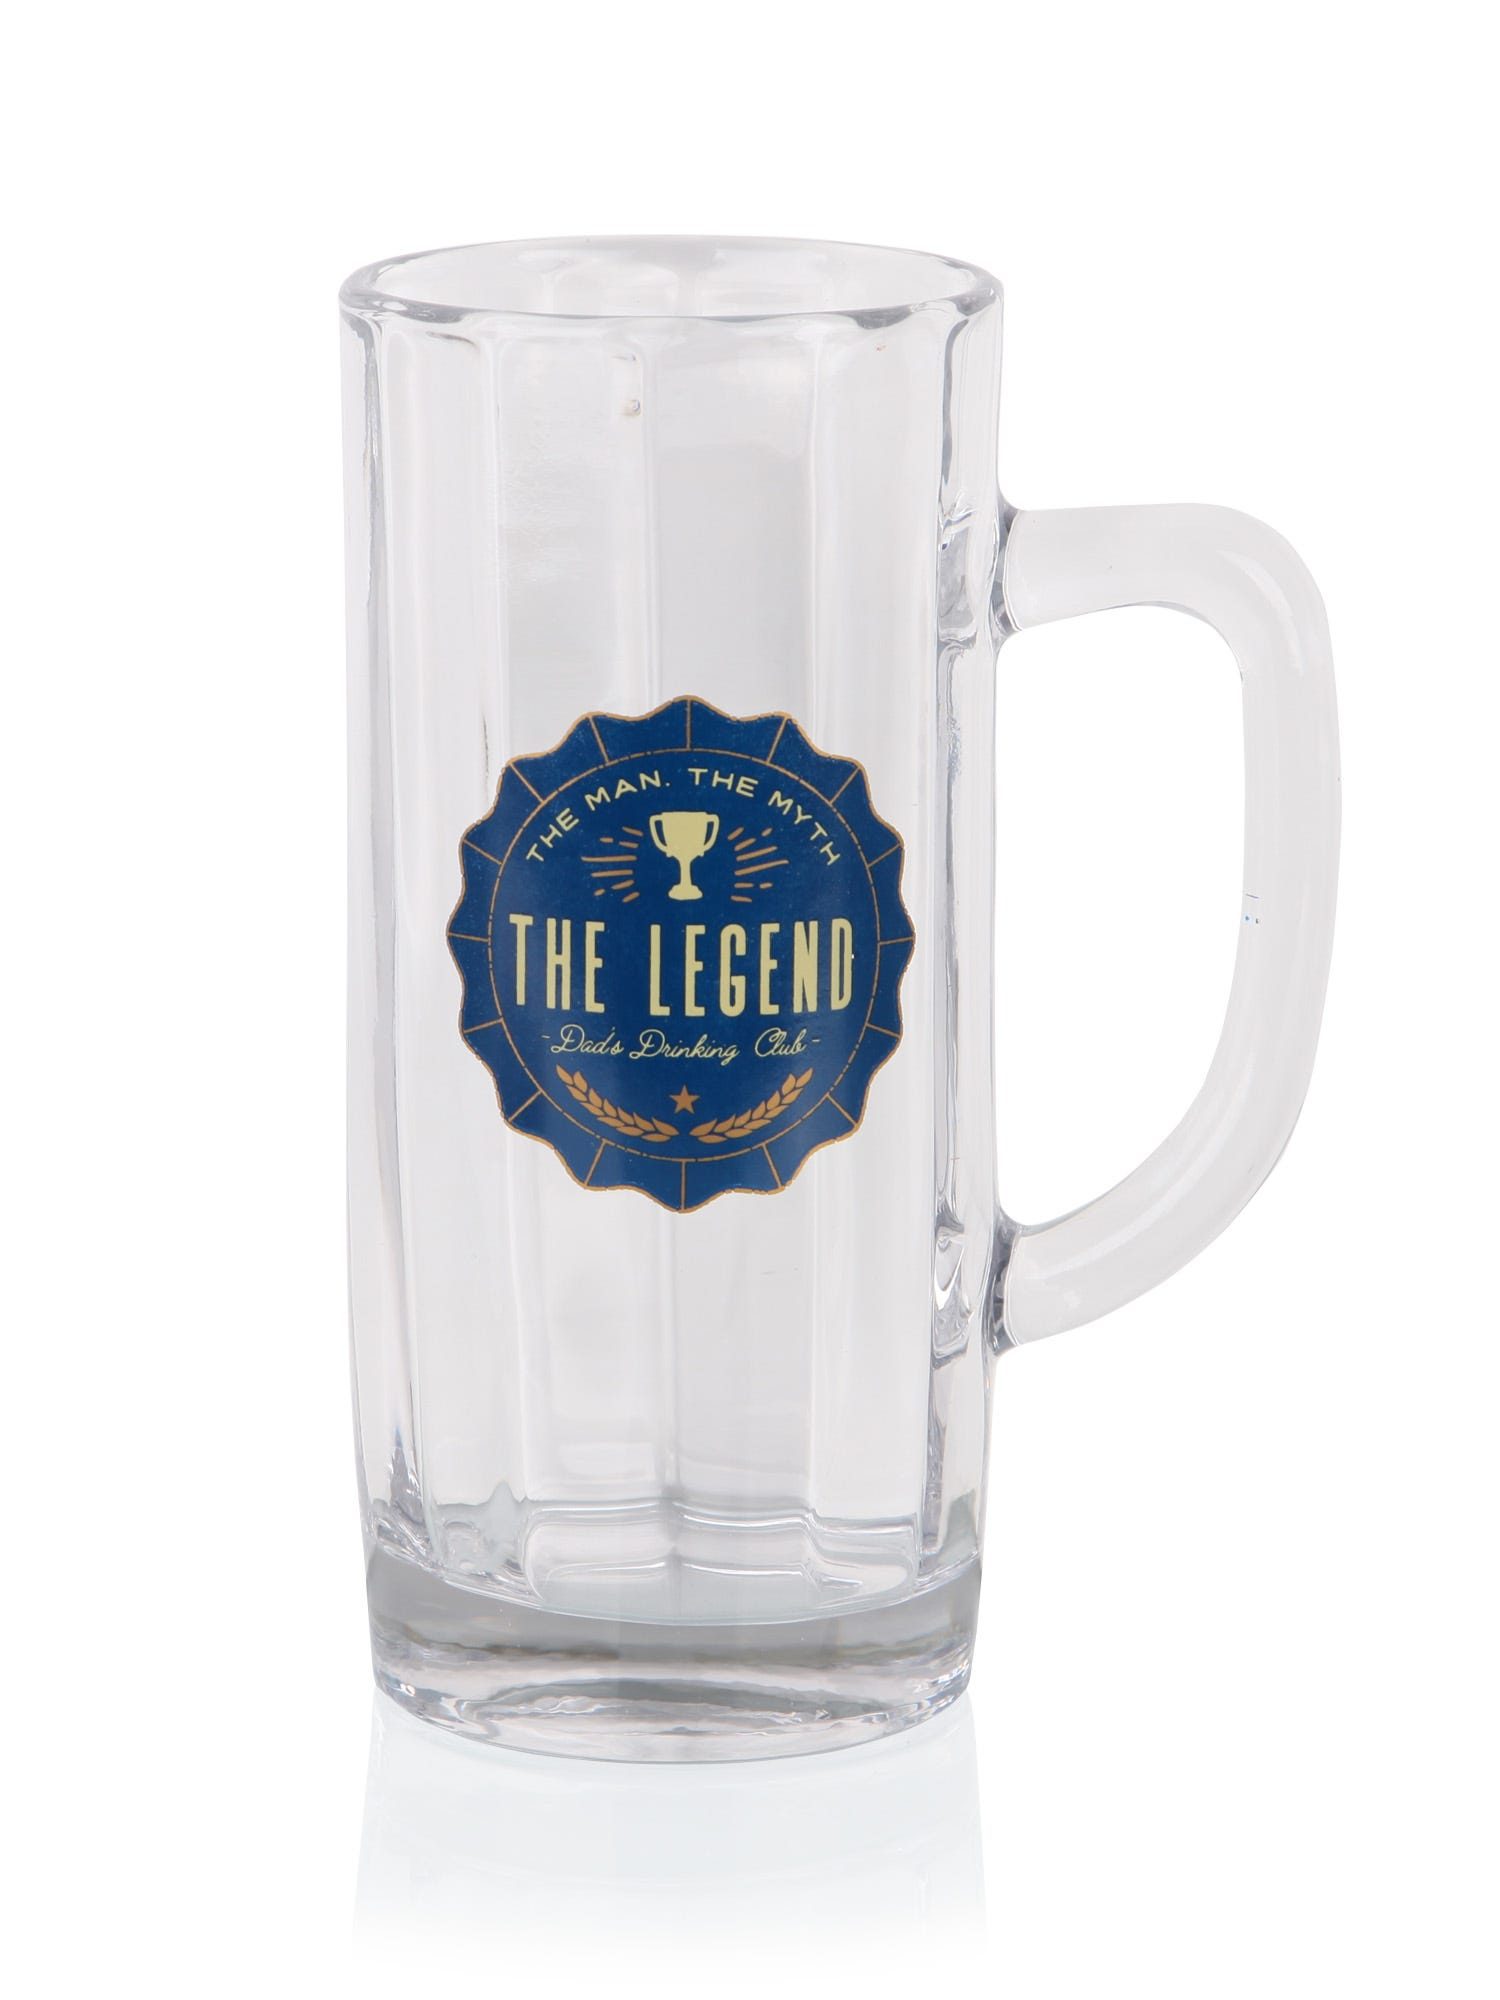 Legend Tankard And Coaster Set <p>Present this wonderful tankard and coaster gift set to the man, the myth and the legend in your life. Perfect gift for Father's Day, a Birthday or for any occasion!</p><p>Dishwasher safe</p>